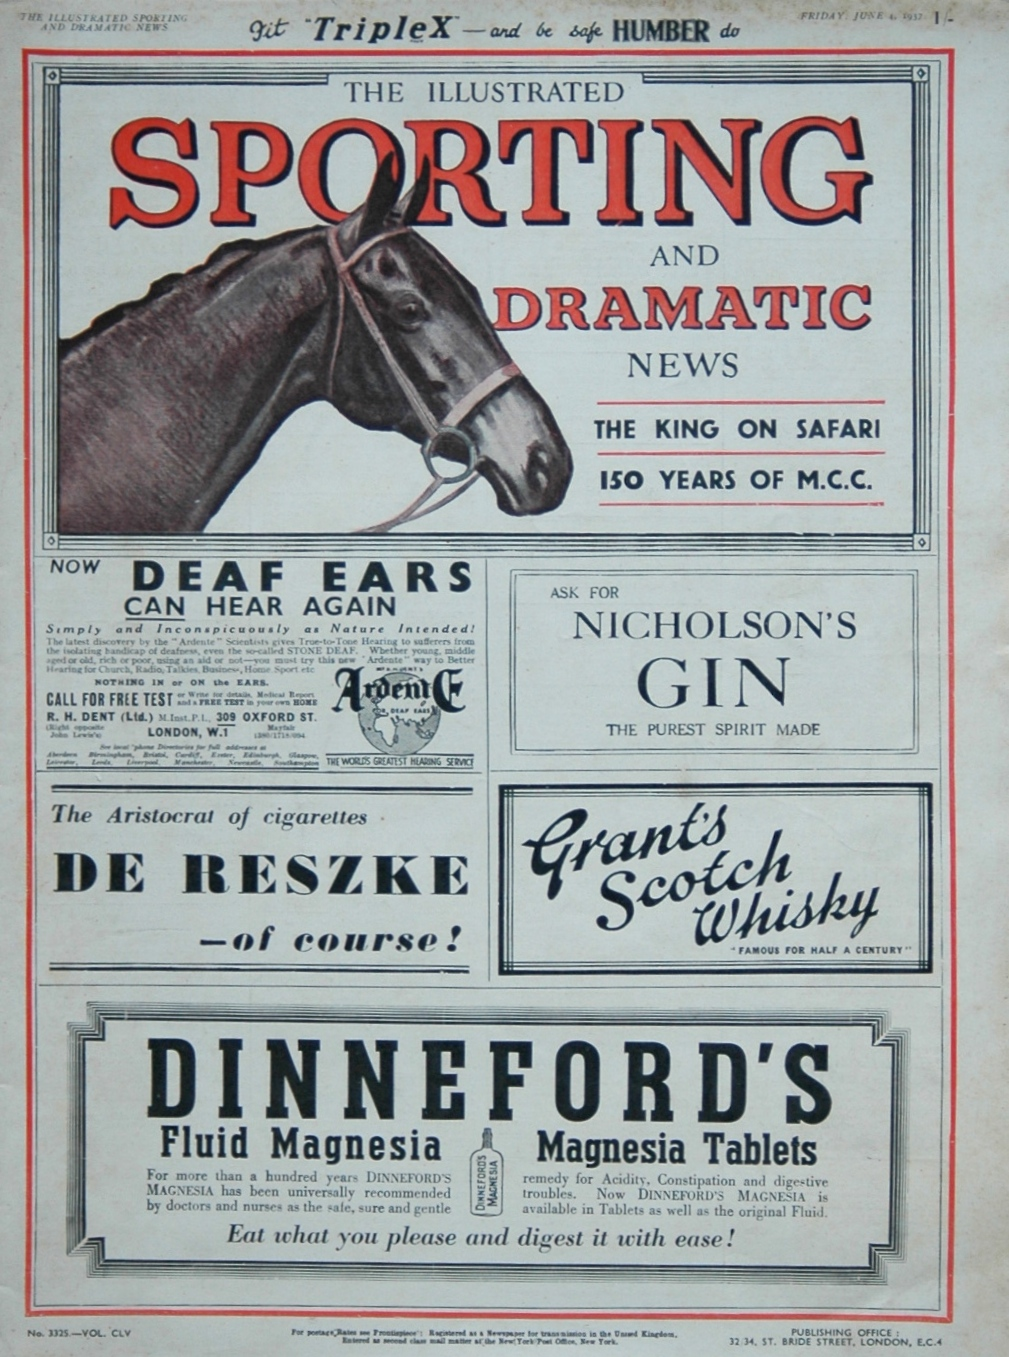 Illustrated Sporting and Dramatic News June 4th 1937.